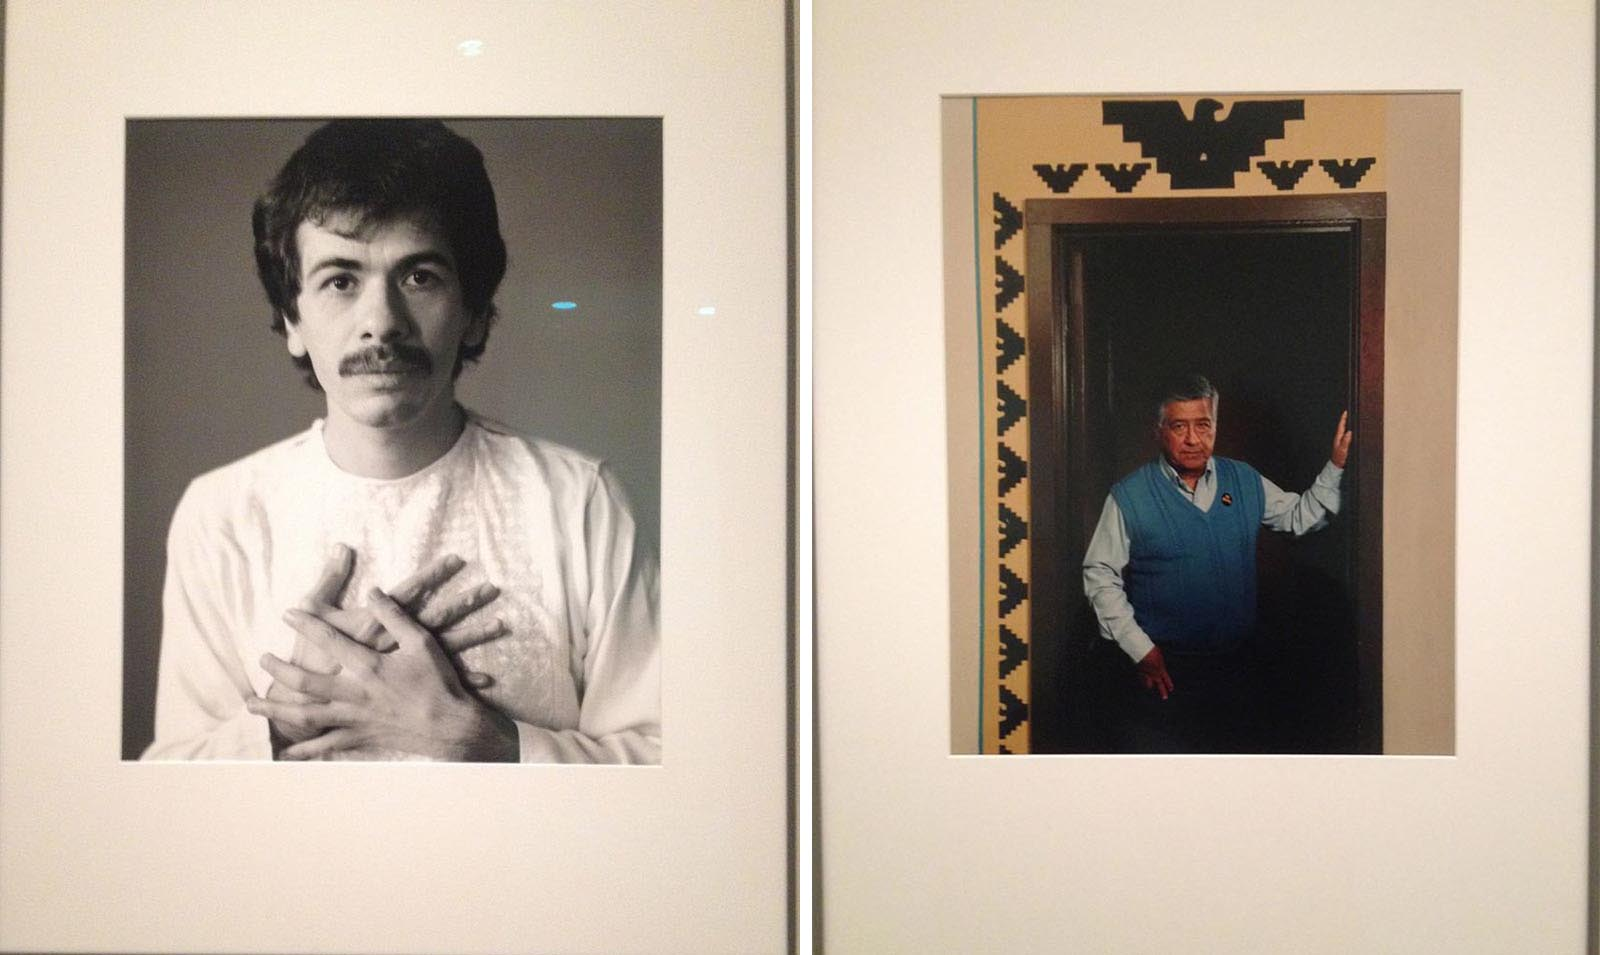 Carlos Santana, a graduate of Mission High School, and Cesar Chavez, who visited the Mission during different protests,  hang side by side at the Smithsonian Gallery of American Art